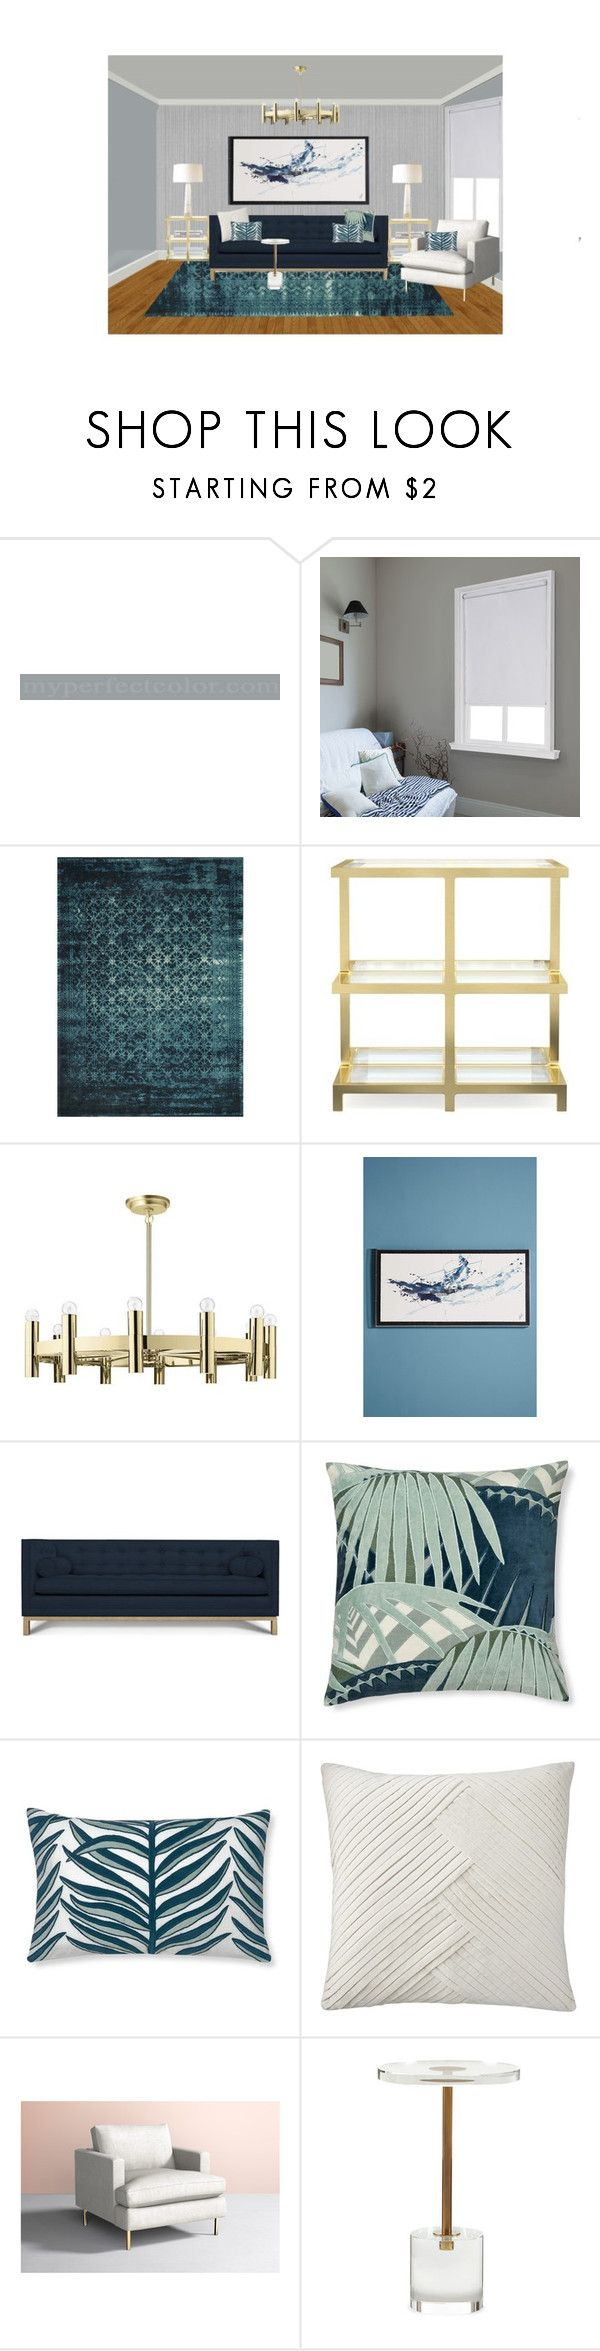 """""""Office Seating"""" by parisa25 on Polyvore featuring interior, interiors, interior design, home, home decor, interior decorating, Benjamin Moore, Williams-Sonoma, Sara Brown and Anthropologie"""